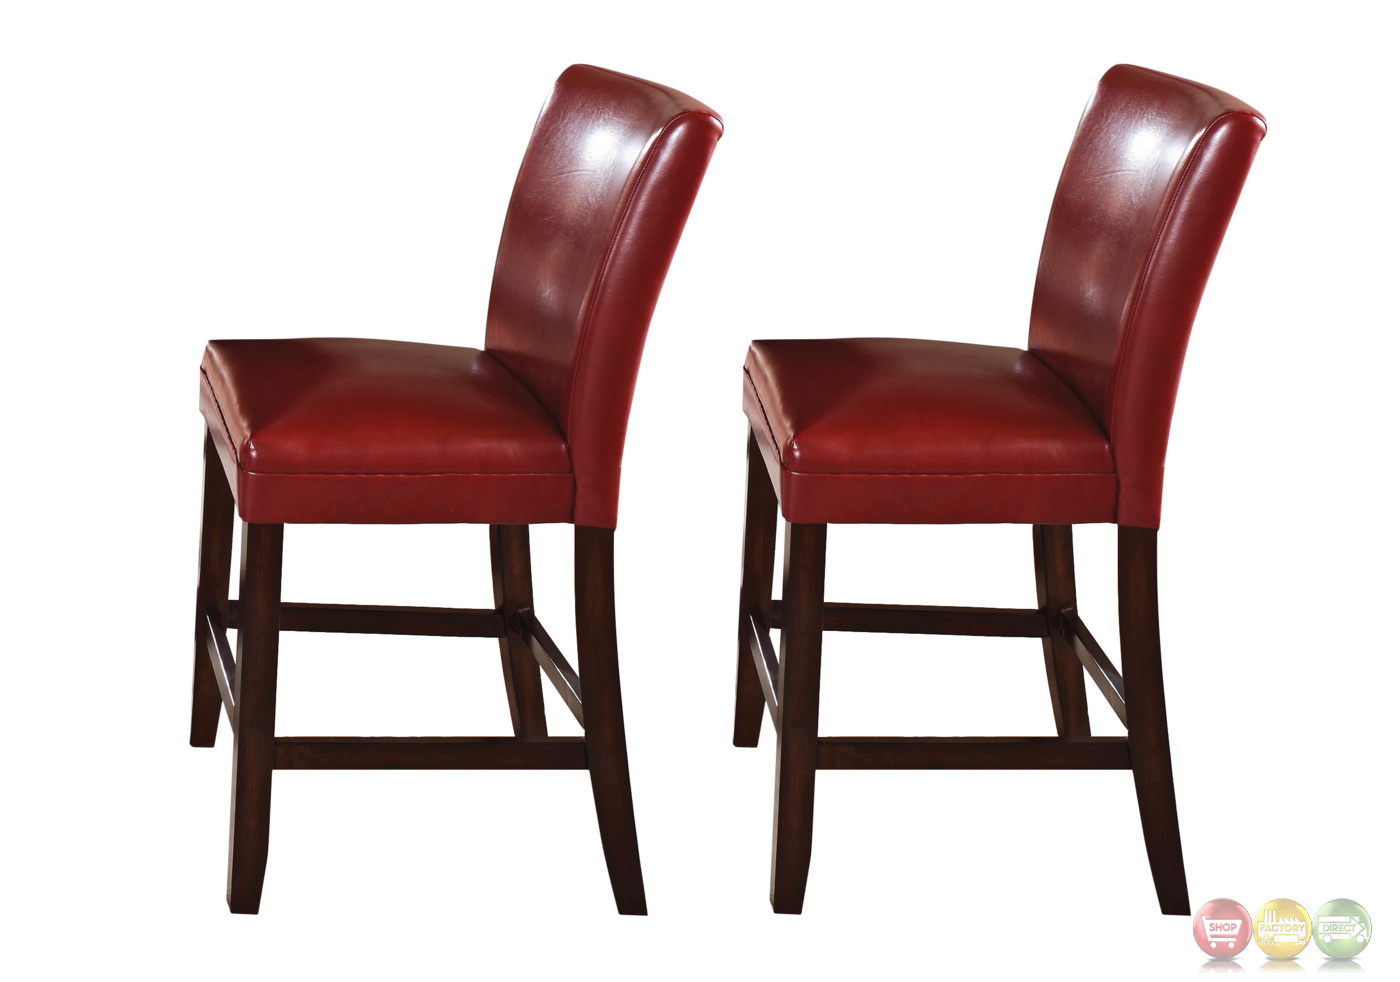 chair stool counter height wheelchair malaysia set of 2 hartford red leather upholstered